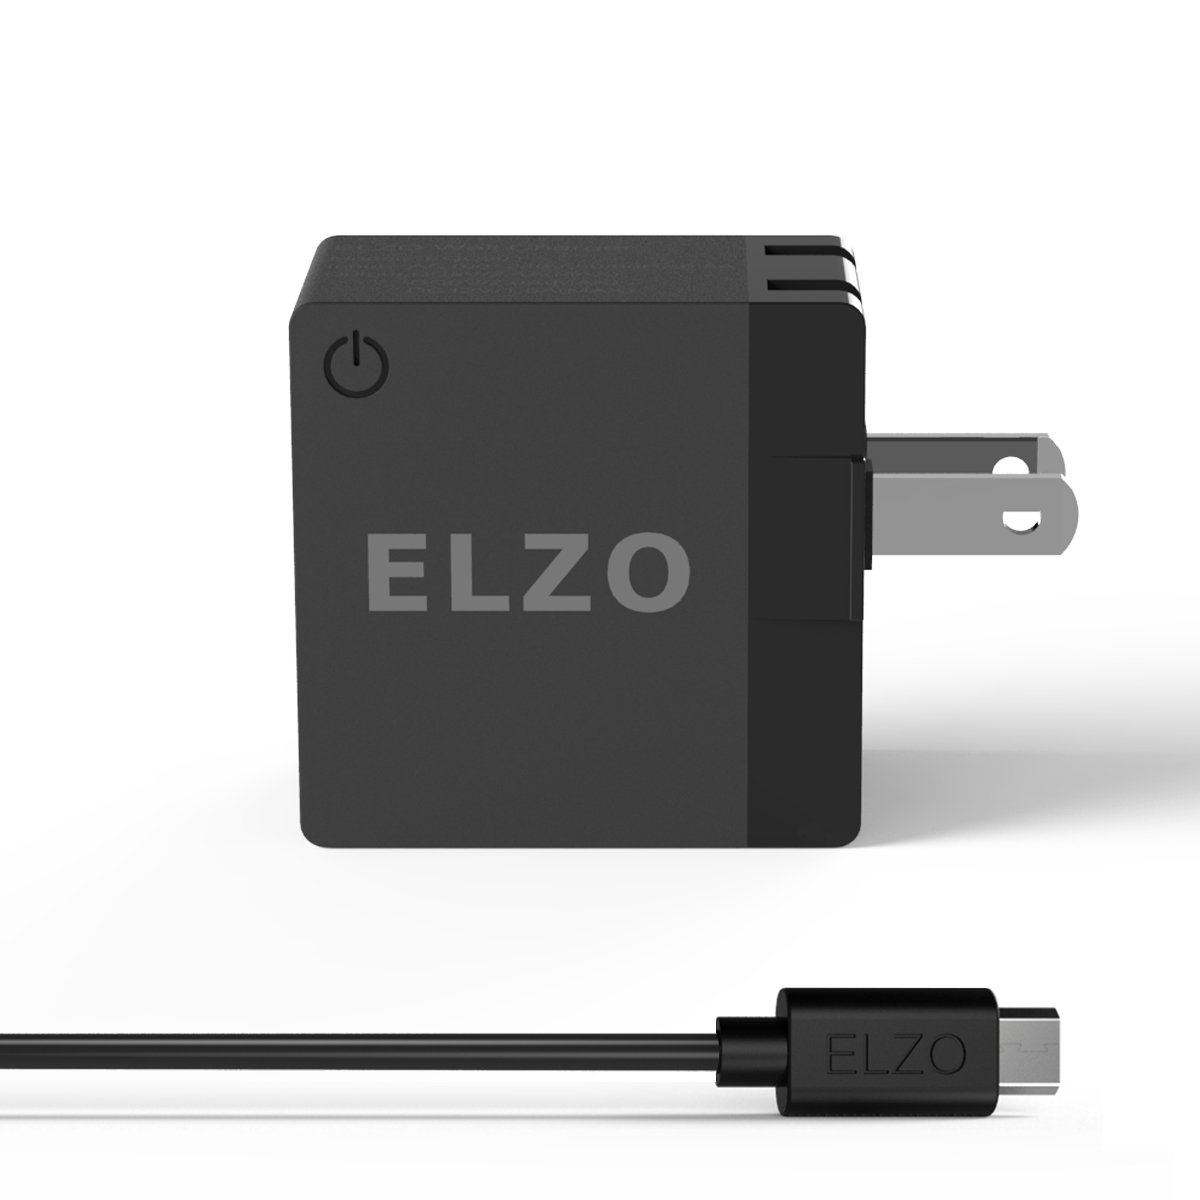 Elzo Quick Charge 3.0 18W USB Wall Charger Adapter Fast Portable Charger With A 3.3ft Rapid Quick Charge Micro USB Cable For Samsung Galaxy/Note, LG Flex2/V10/G4, Nexus 6, Motorola Droid/X, Black